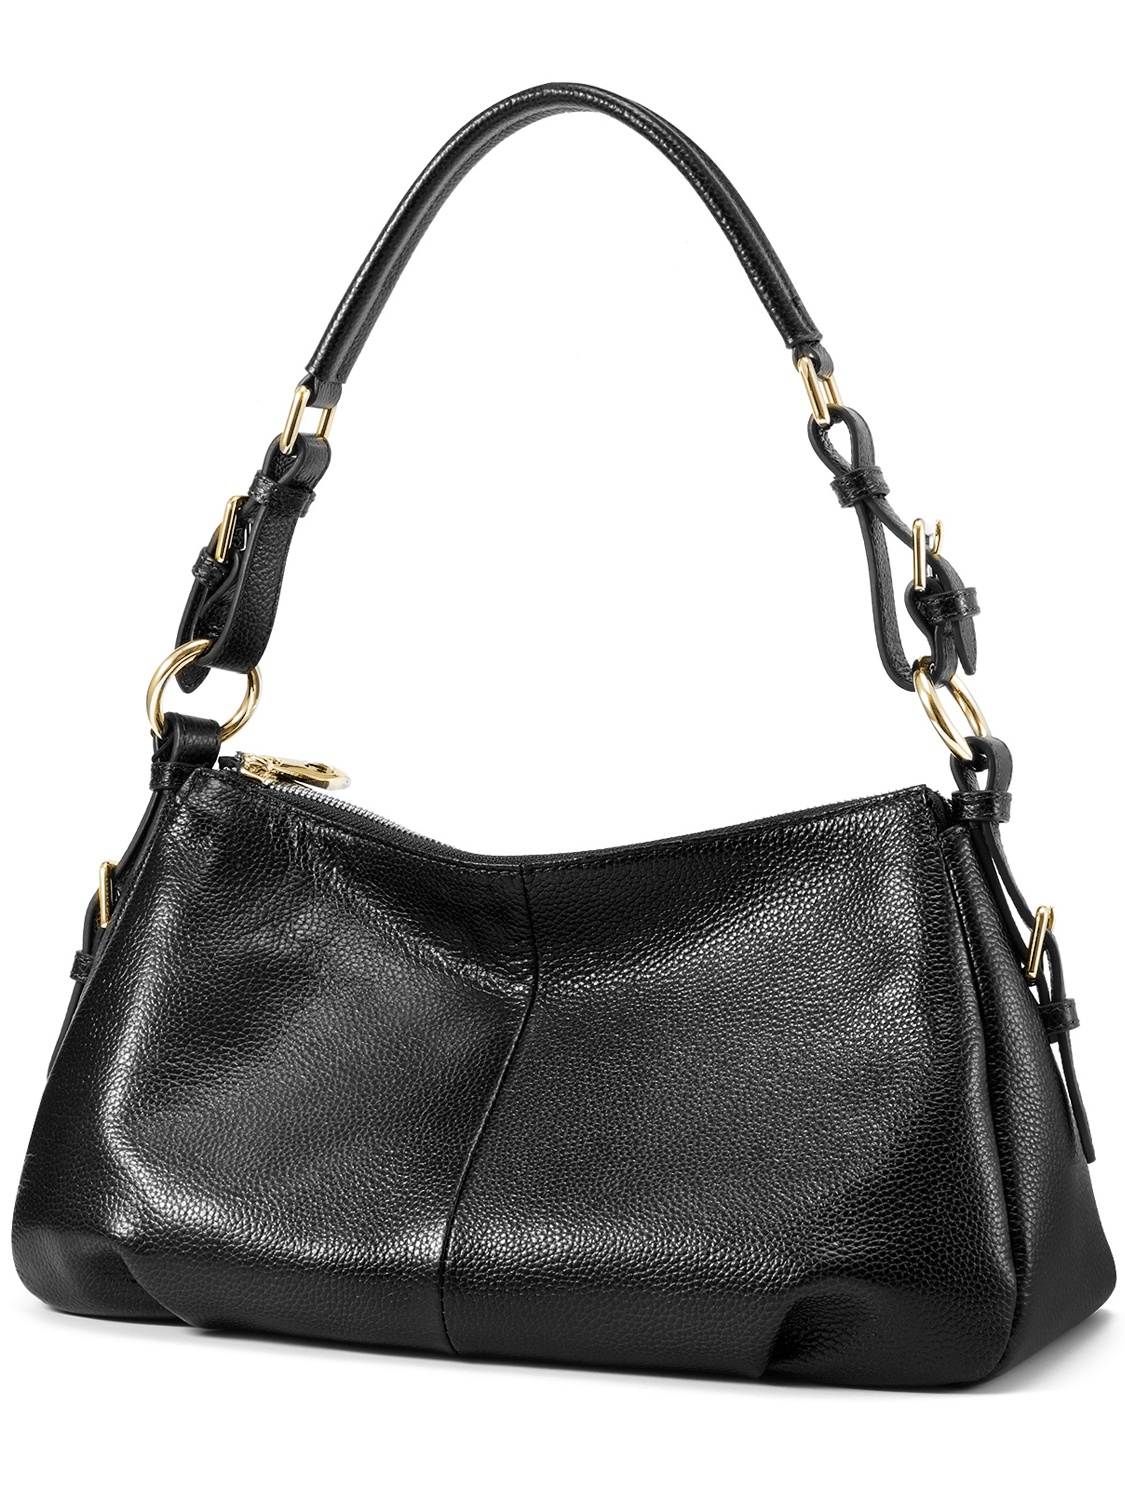 Kattee Ladies' Vintage Leather Hobo Shoulder Handbag (Brown)